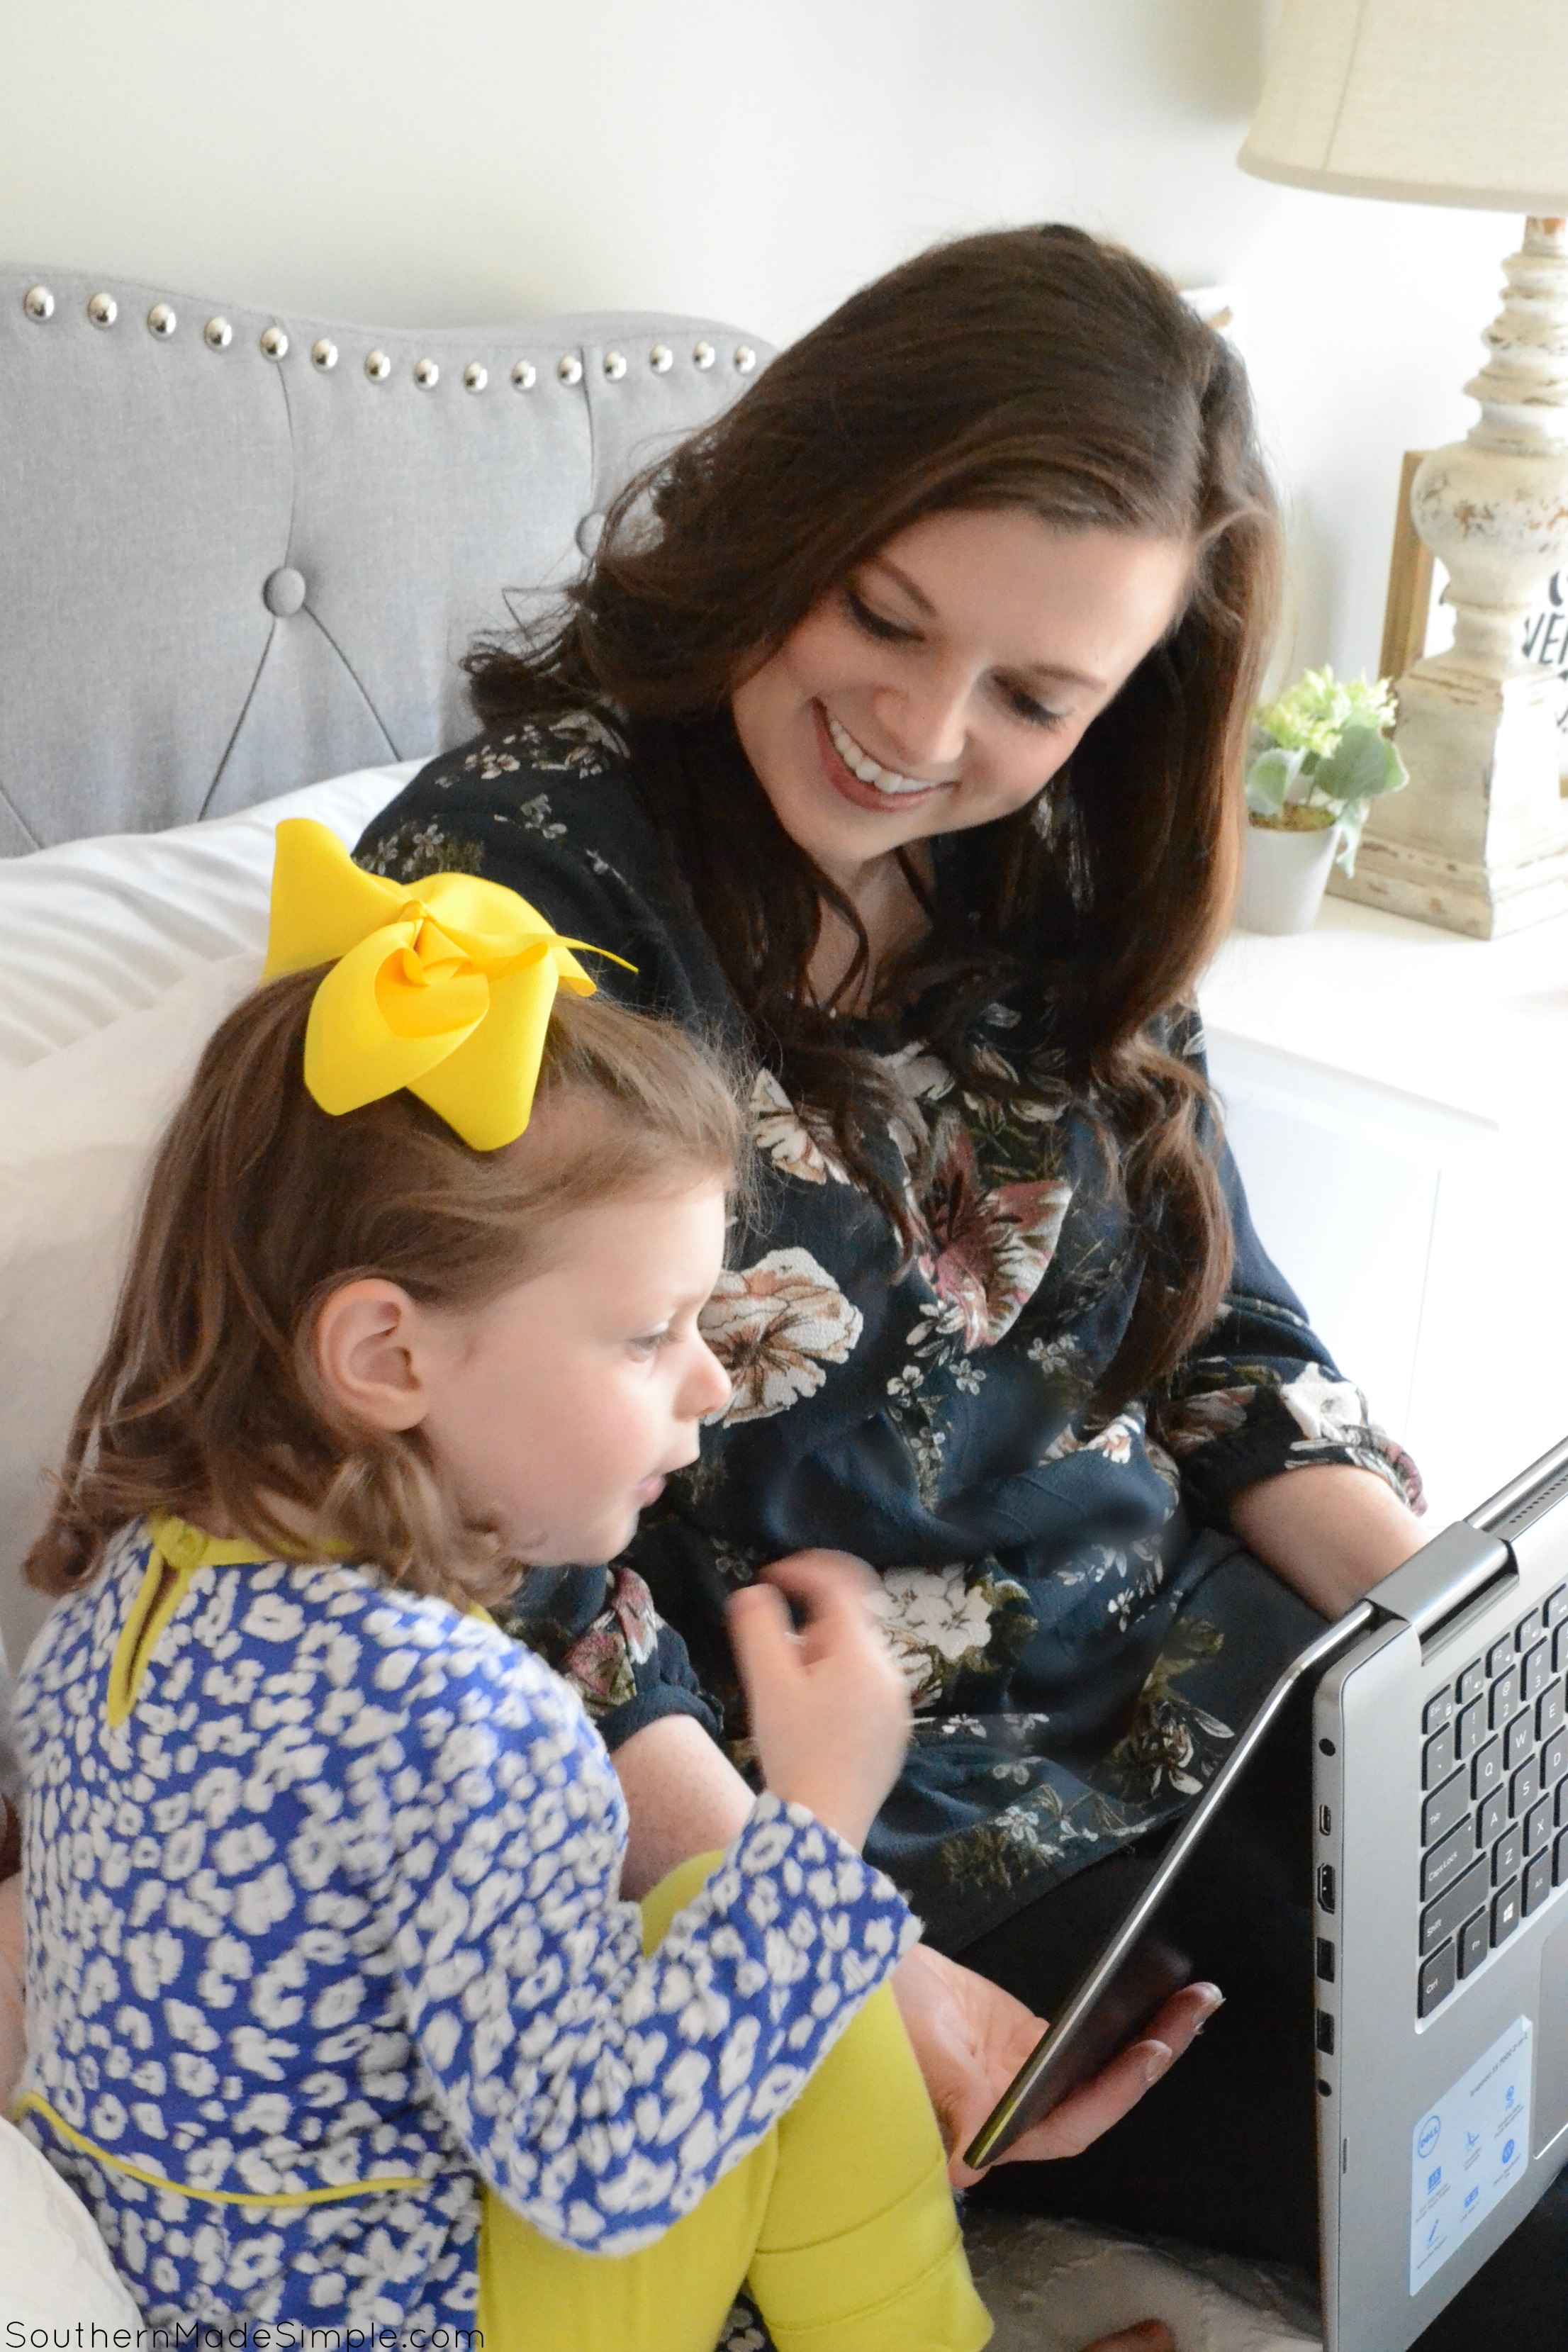 As a work at home parent, I wear many hats and juggle many different things throughout the day. One thing I don't have time for is a PC that can't keep up with everything I throw at it during the course of my day. Find out how I'm rocking this work from home gig with my Intel 8th Gen Core Processor on the blog now! #ad #LoveYourPC